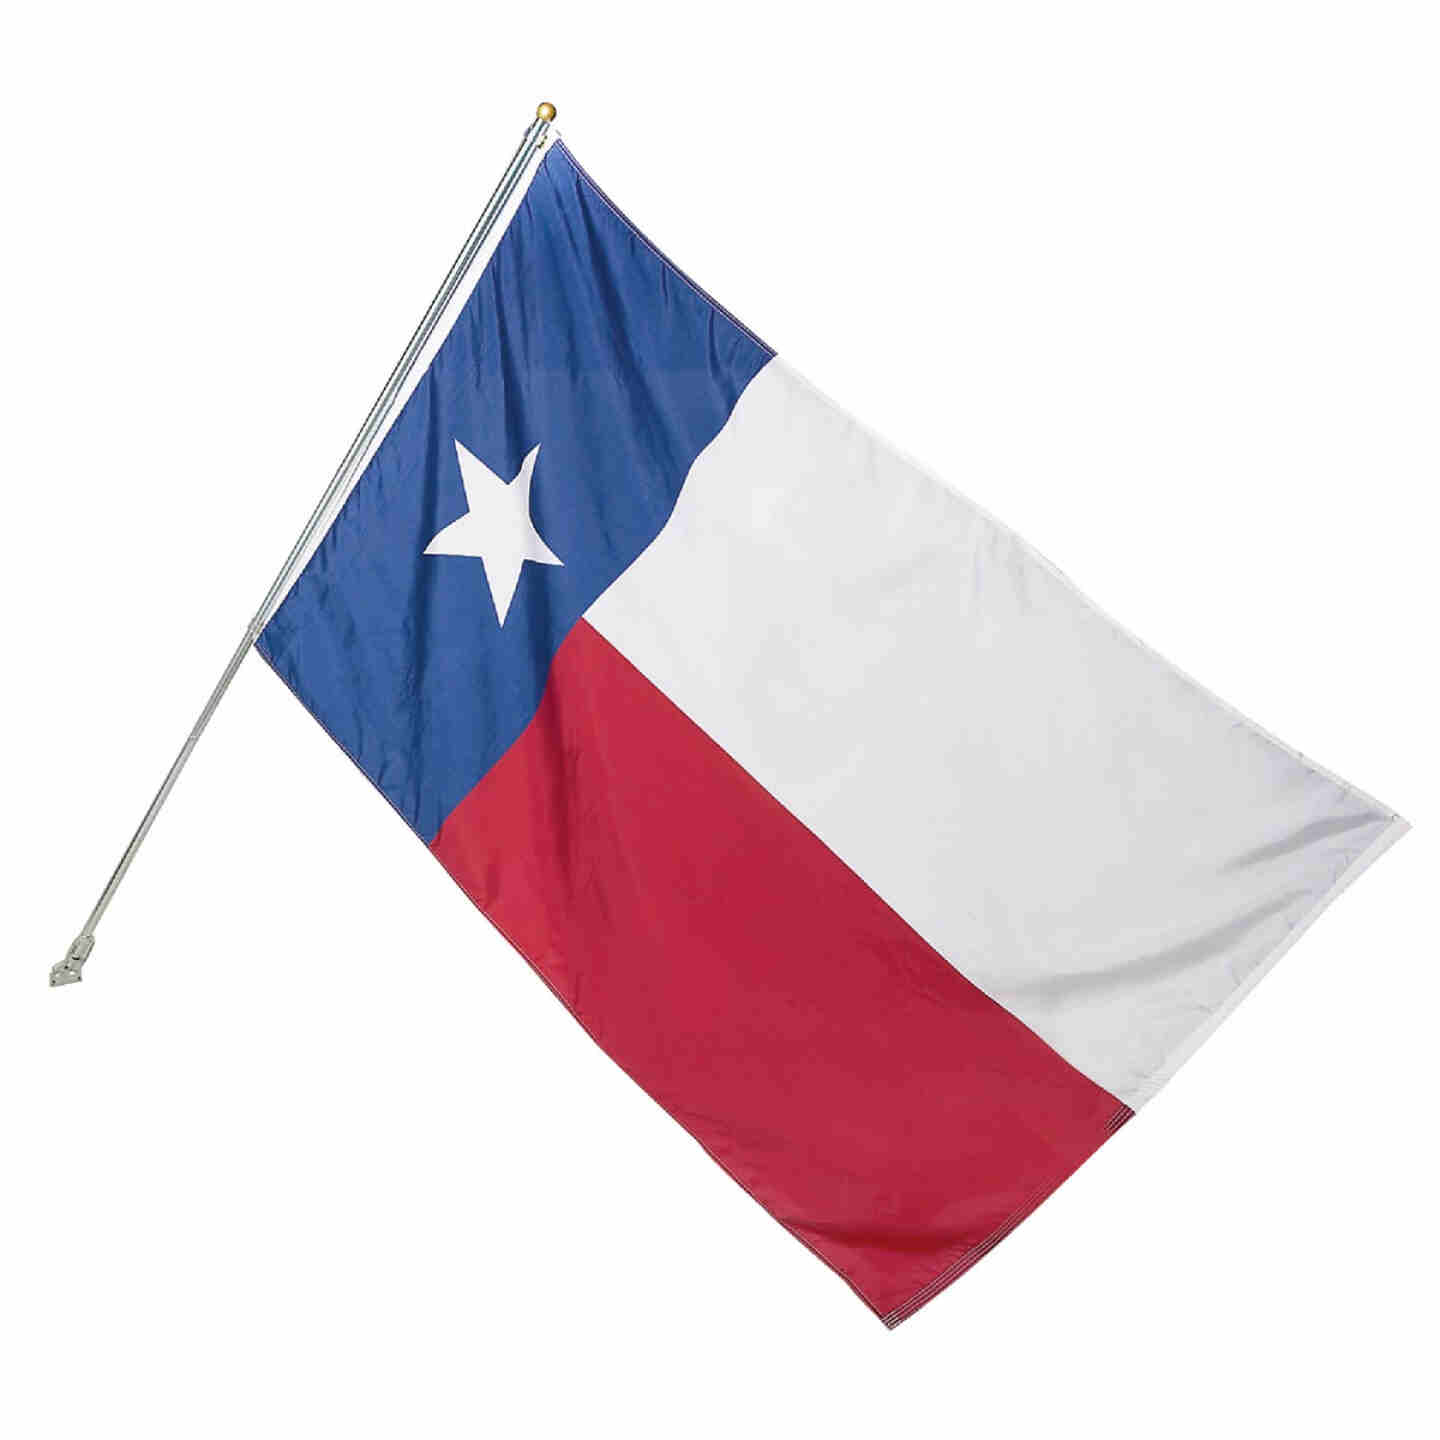 Valley Forge 3 Ft. x 5 Ft. Polyester Texas State Flag & 6 Ft. Pole Kit Image 1